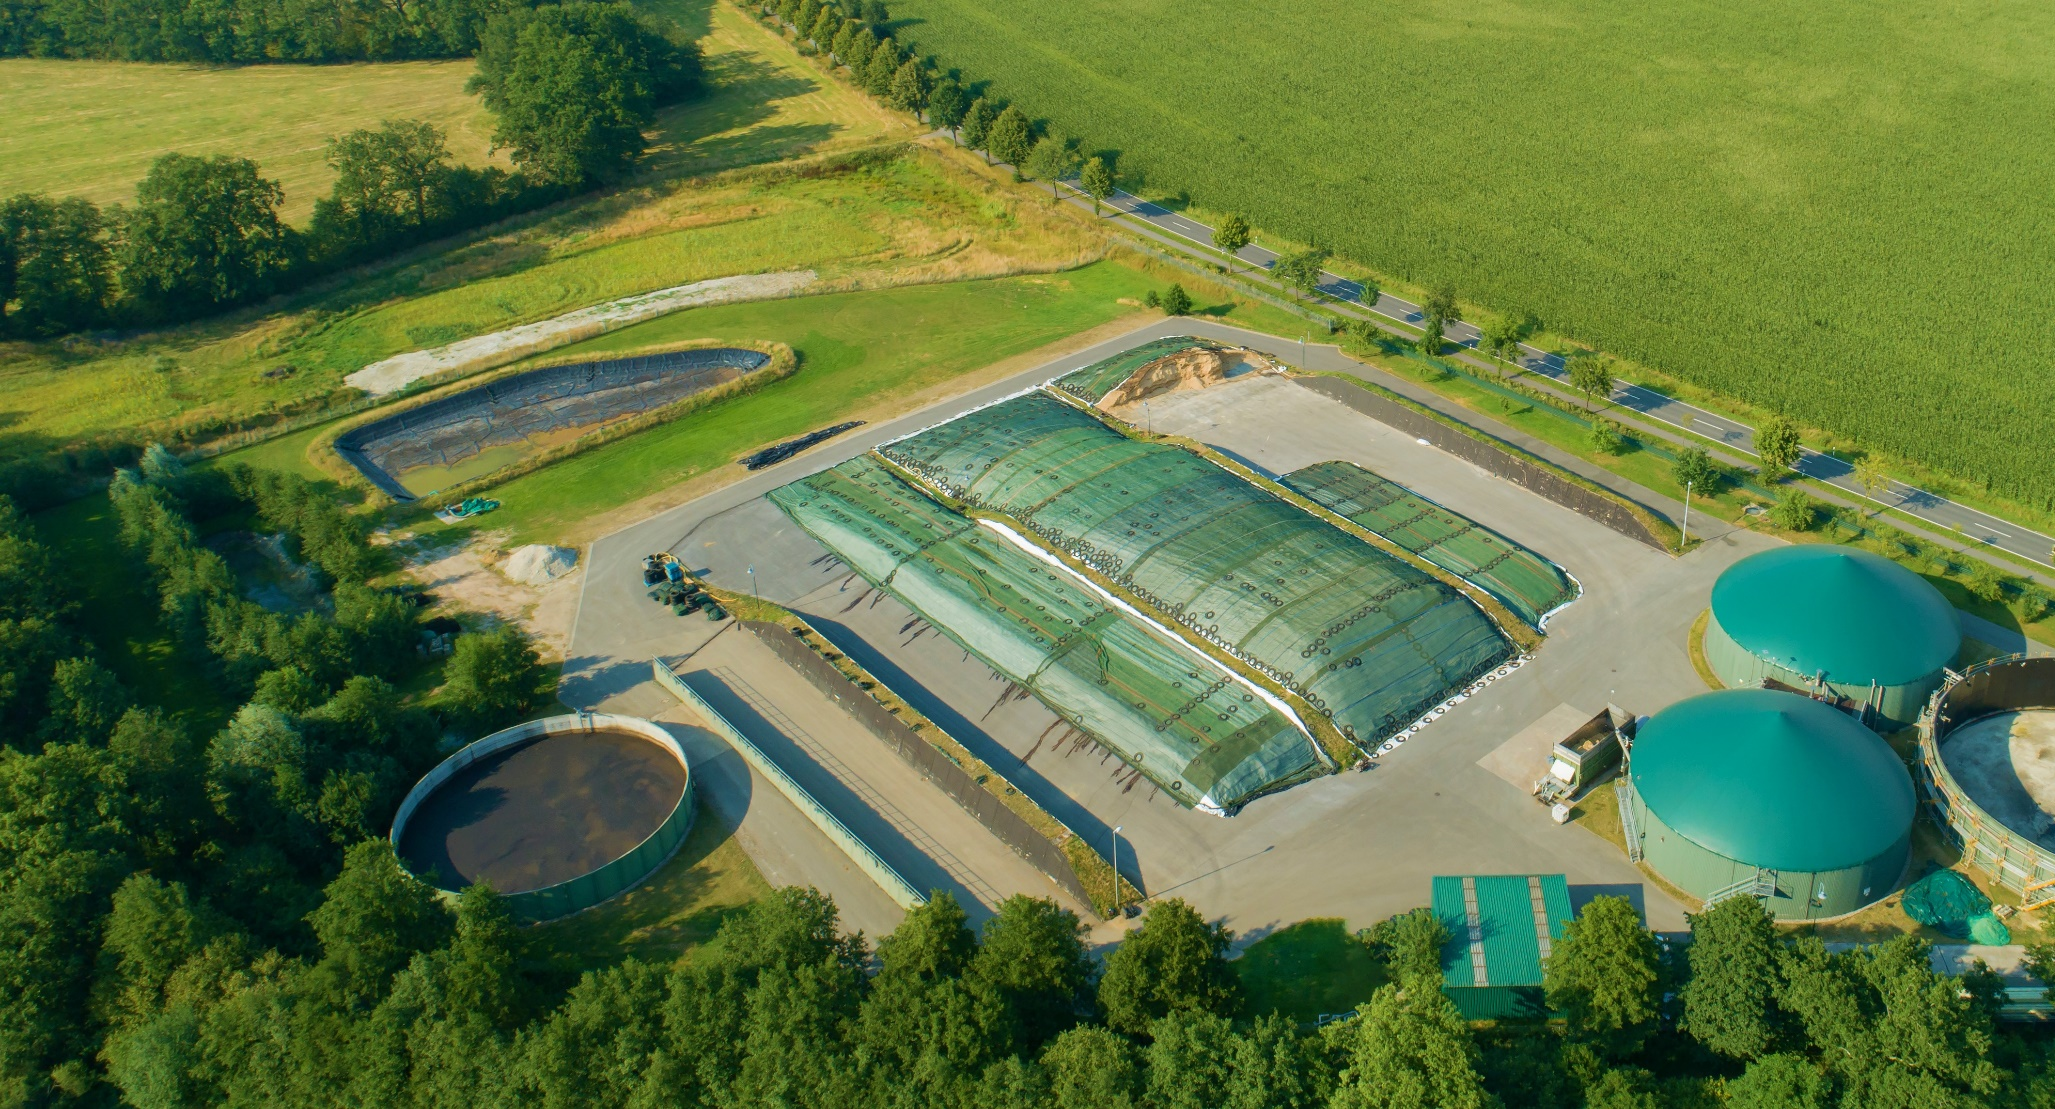 Forage preservation - Biogas plant and clamps aerial view